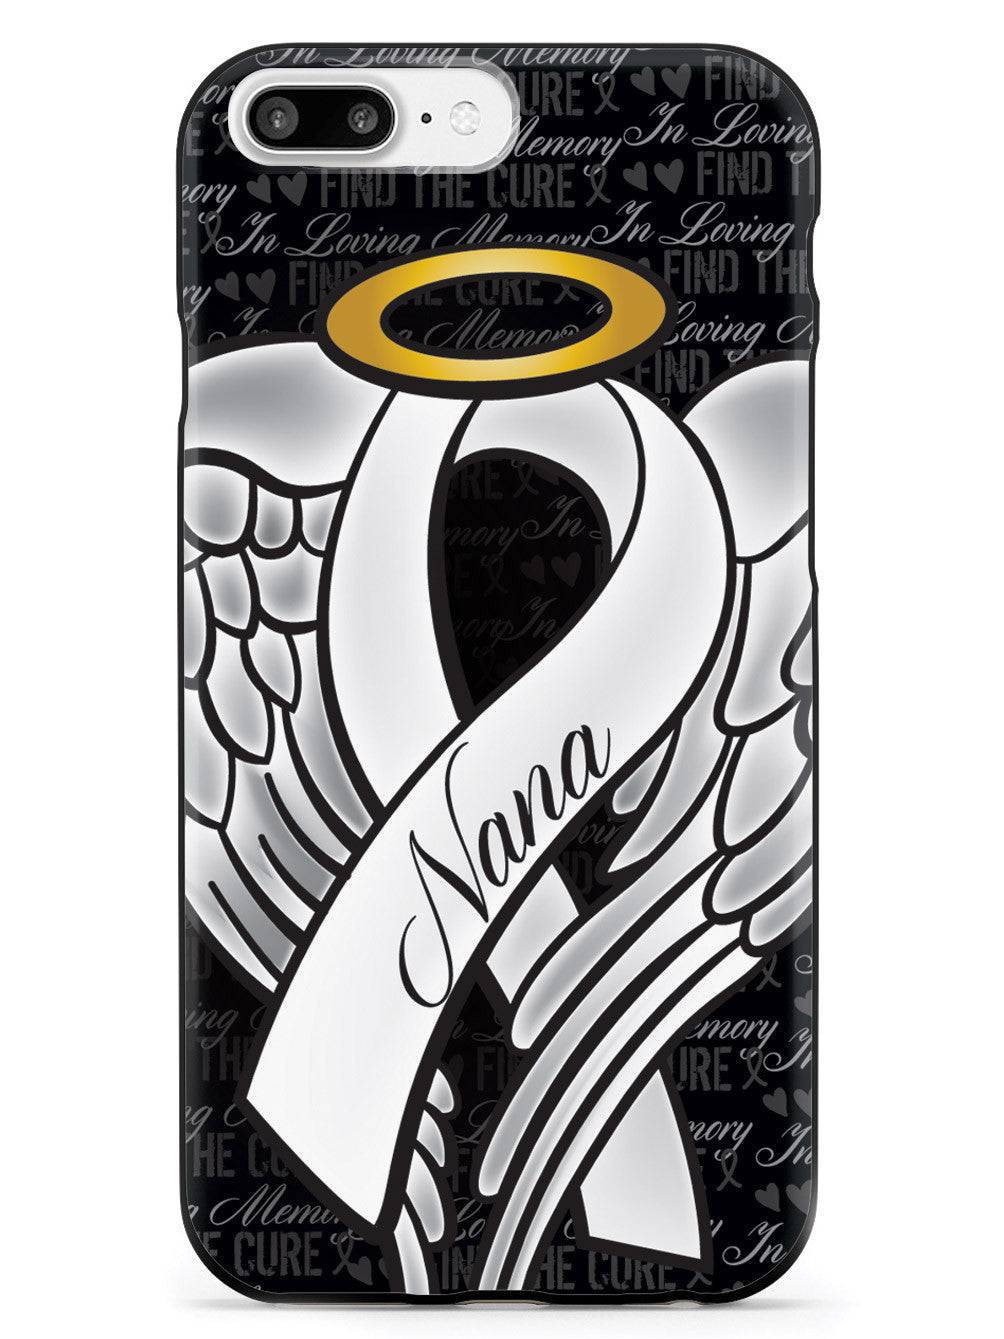 In Loving Memory of My Nana - White Ribbon Case